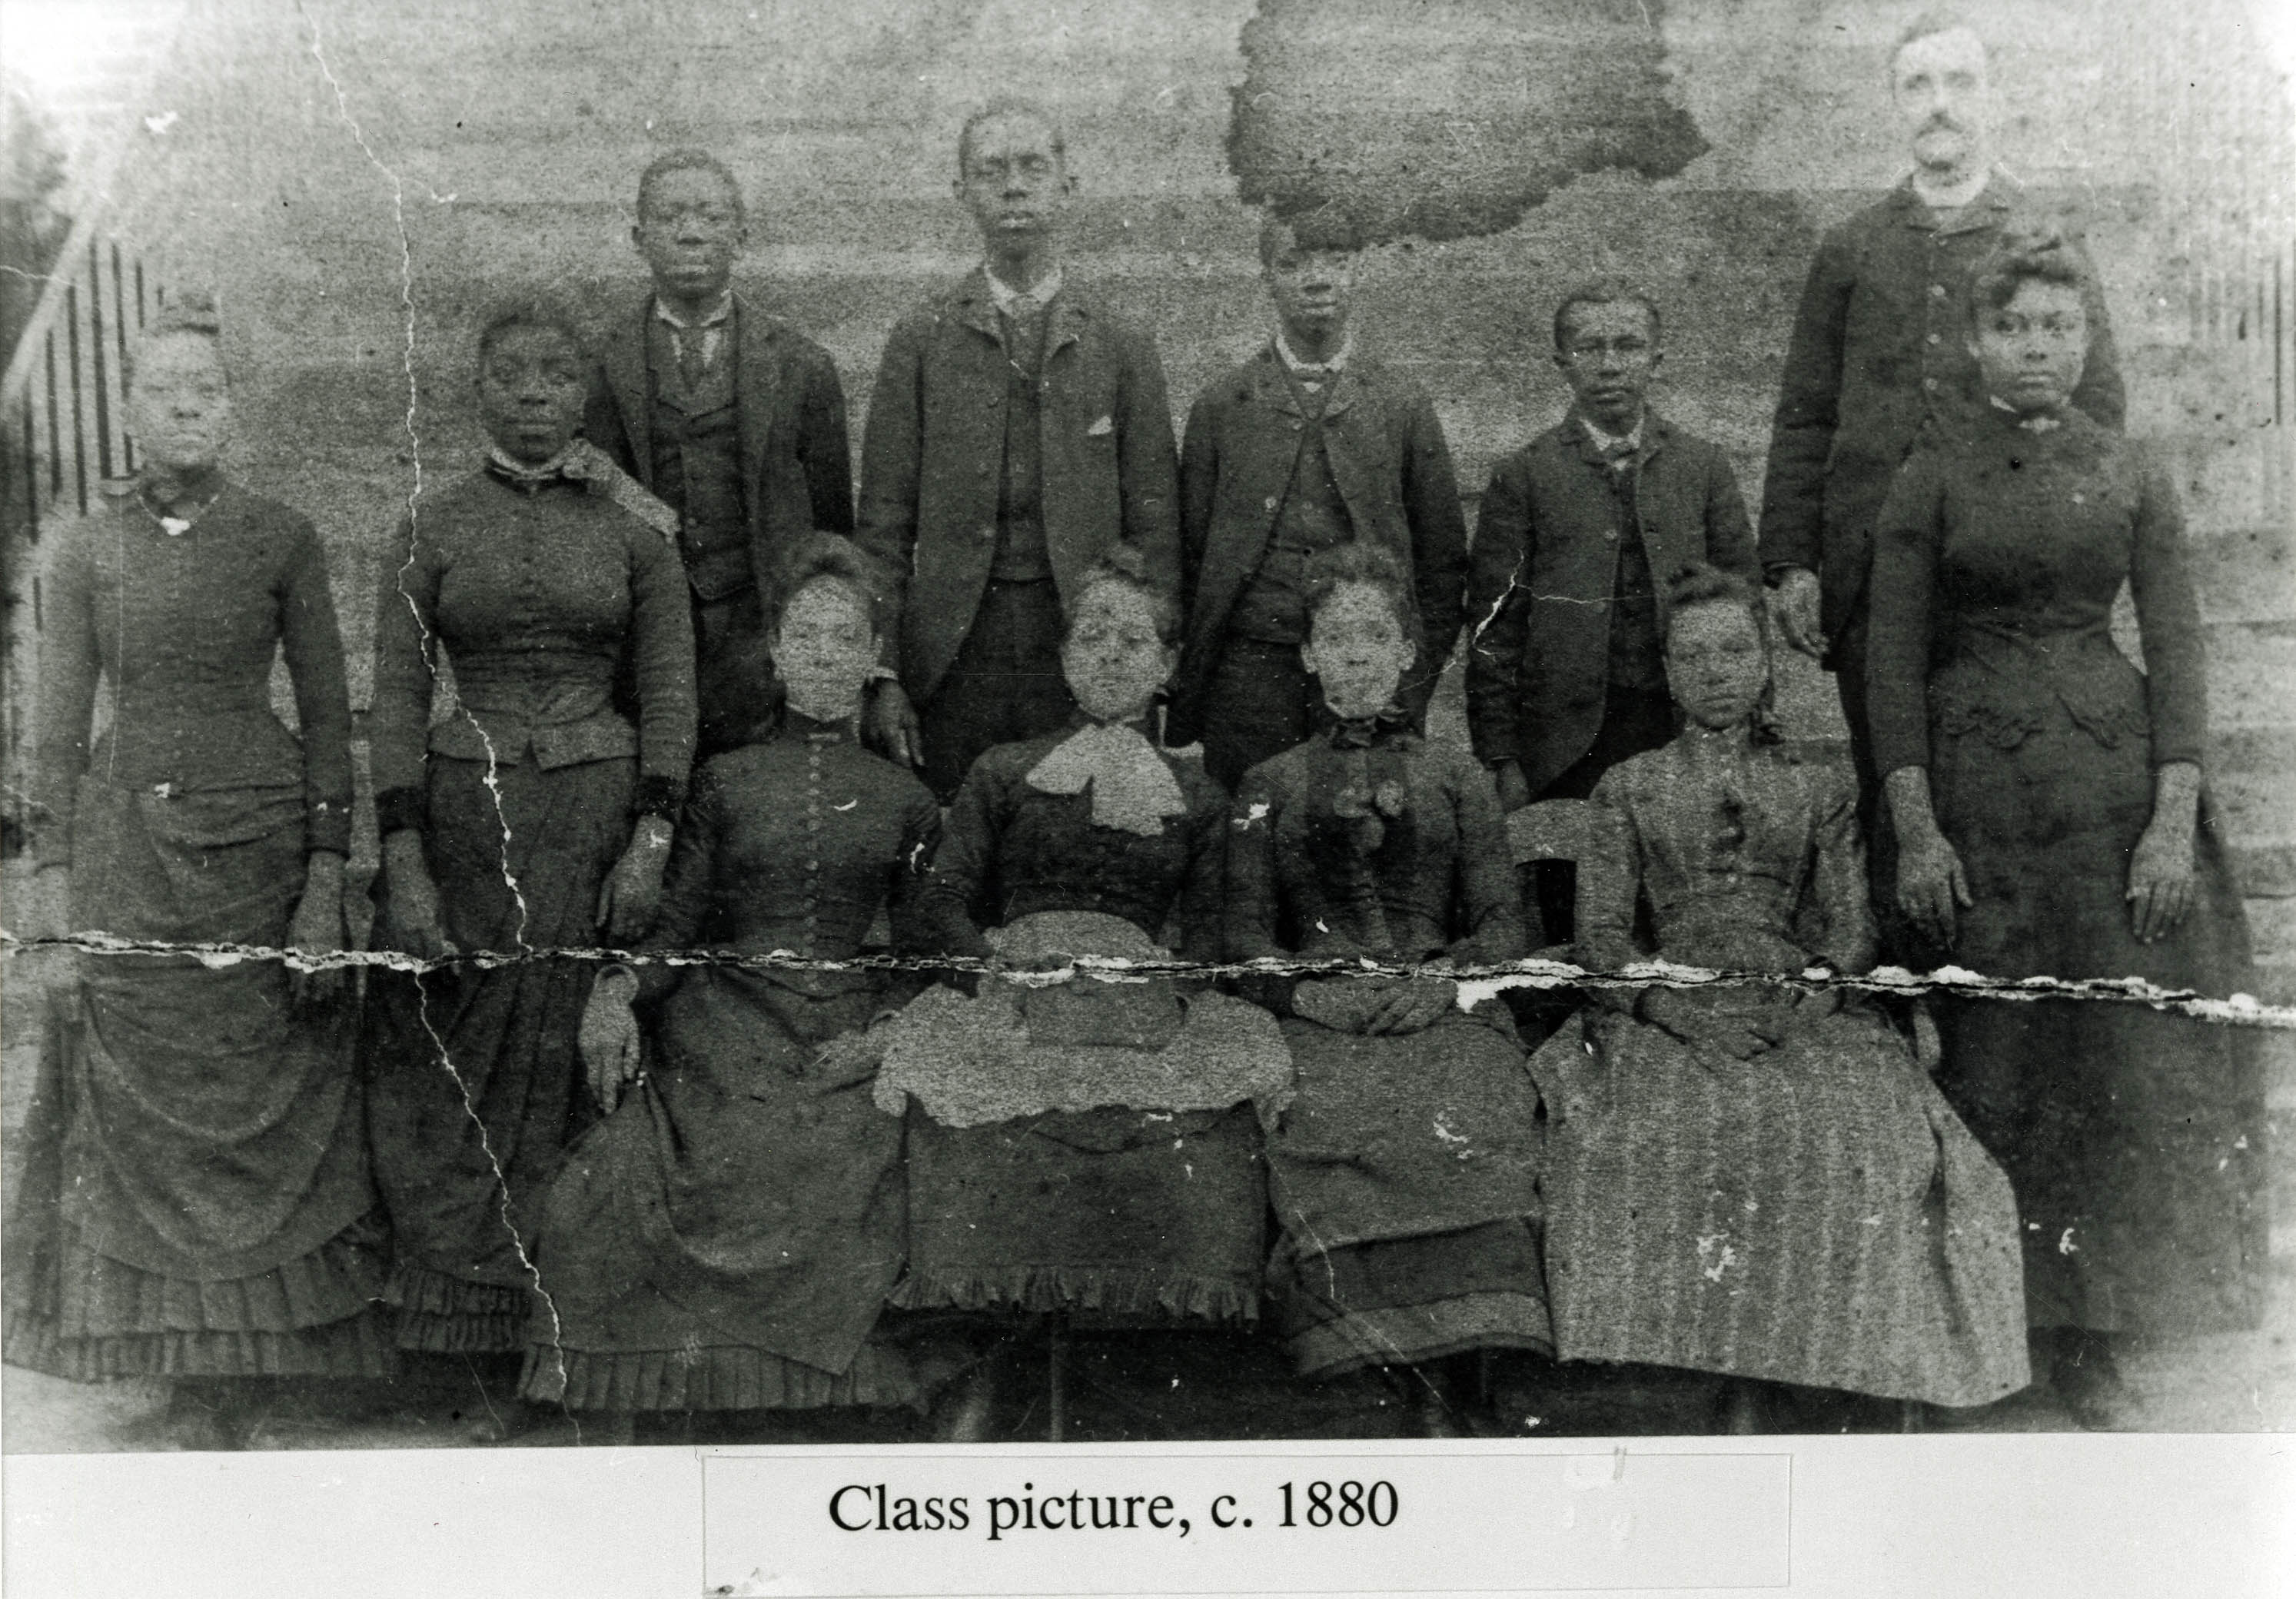 Avery Class Picture